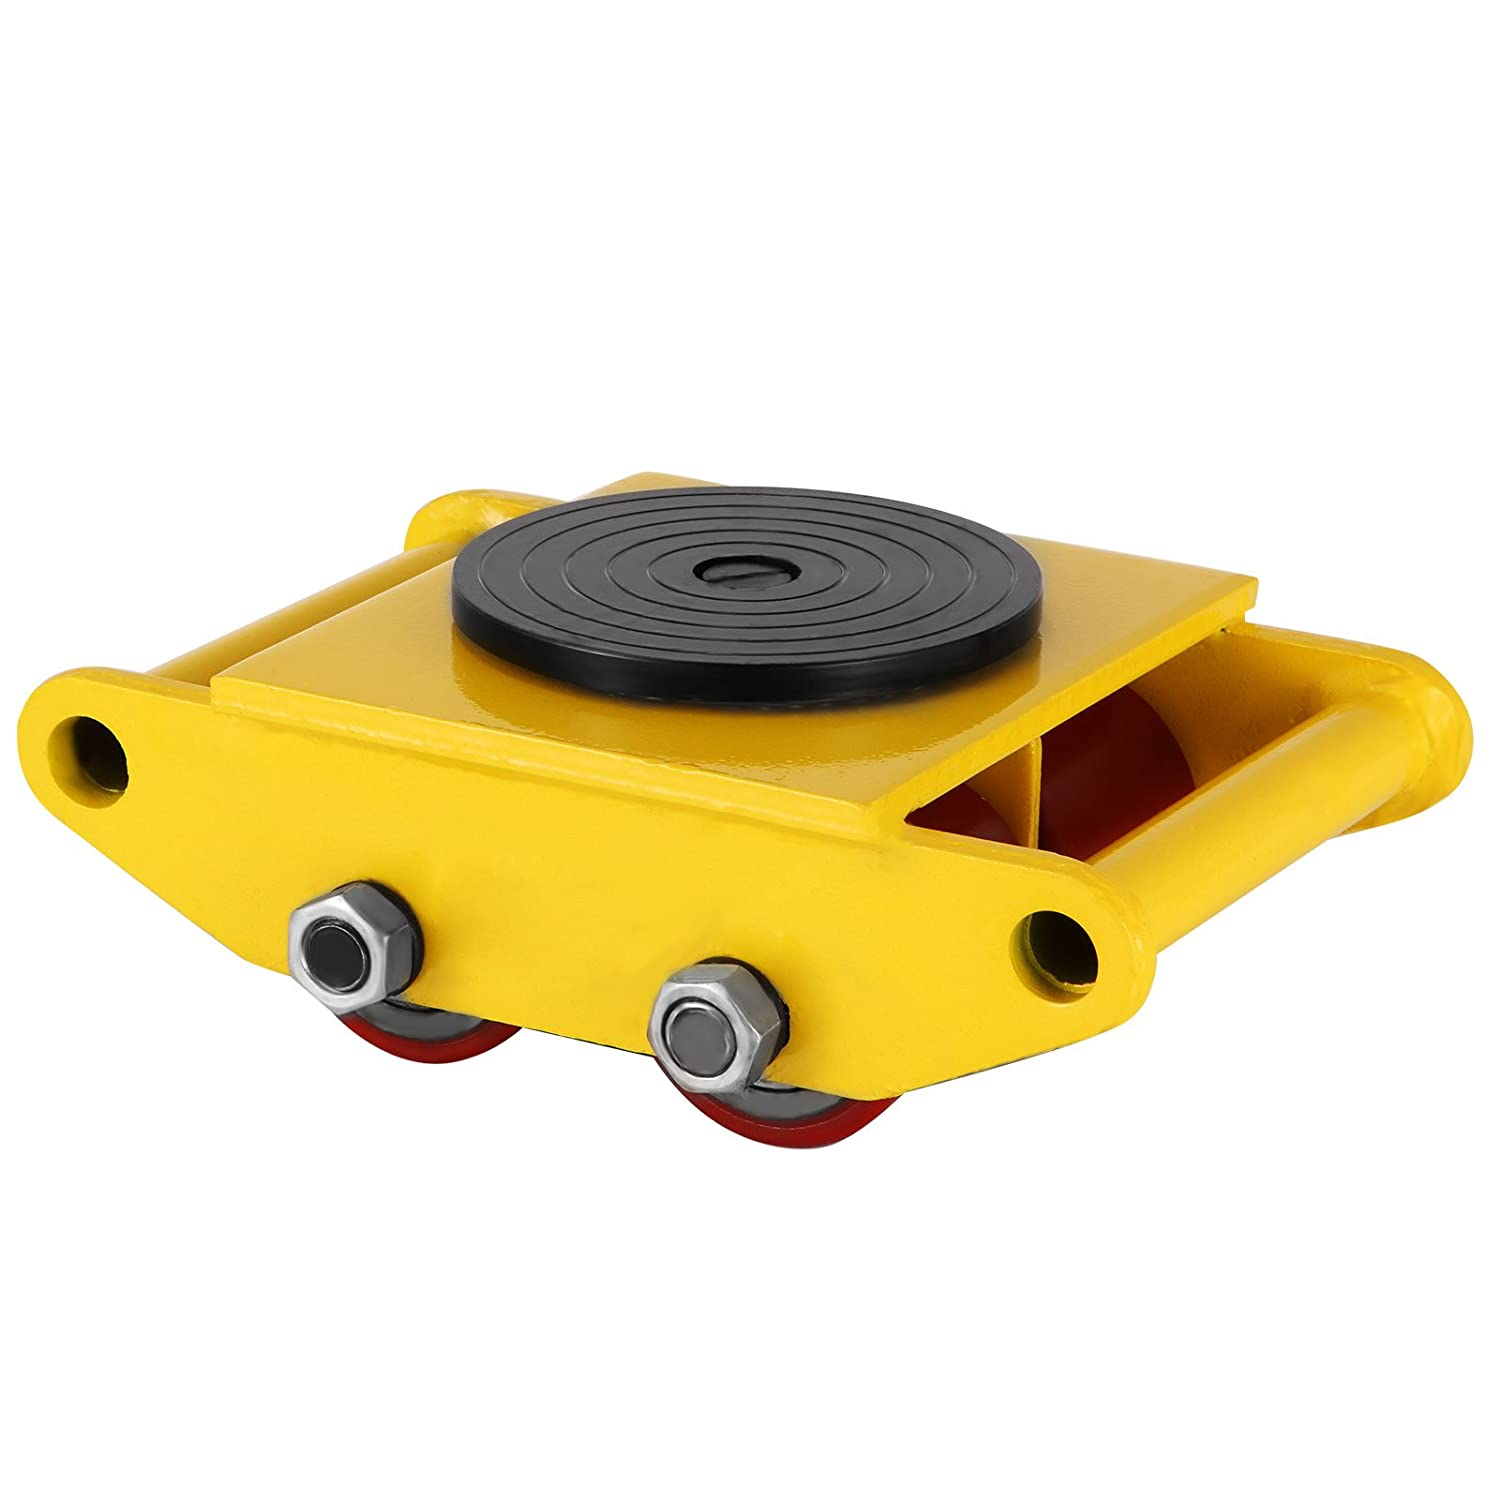 MosaicAL Machinery Mover 12T 26400LBS Capacity Machinery Rolling Skate Heavy Duty All-steel Construction Industrial Transport Machinery Mover Yellow Color(12T 26400LBS)